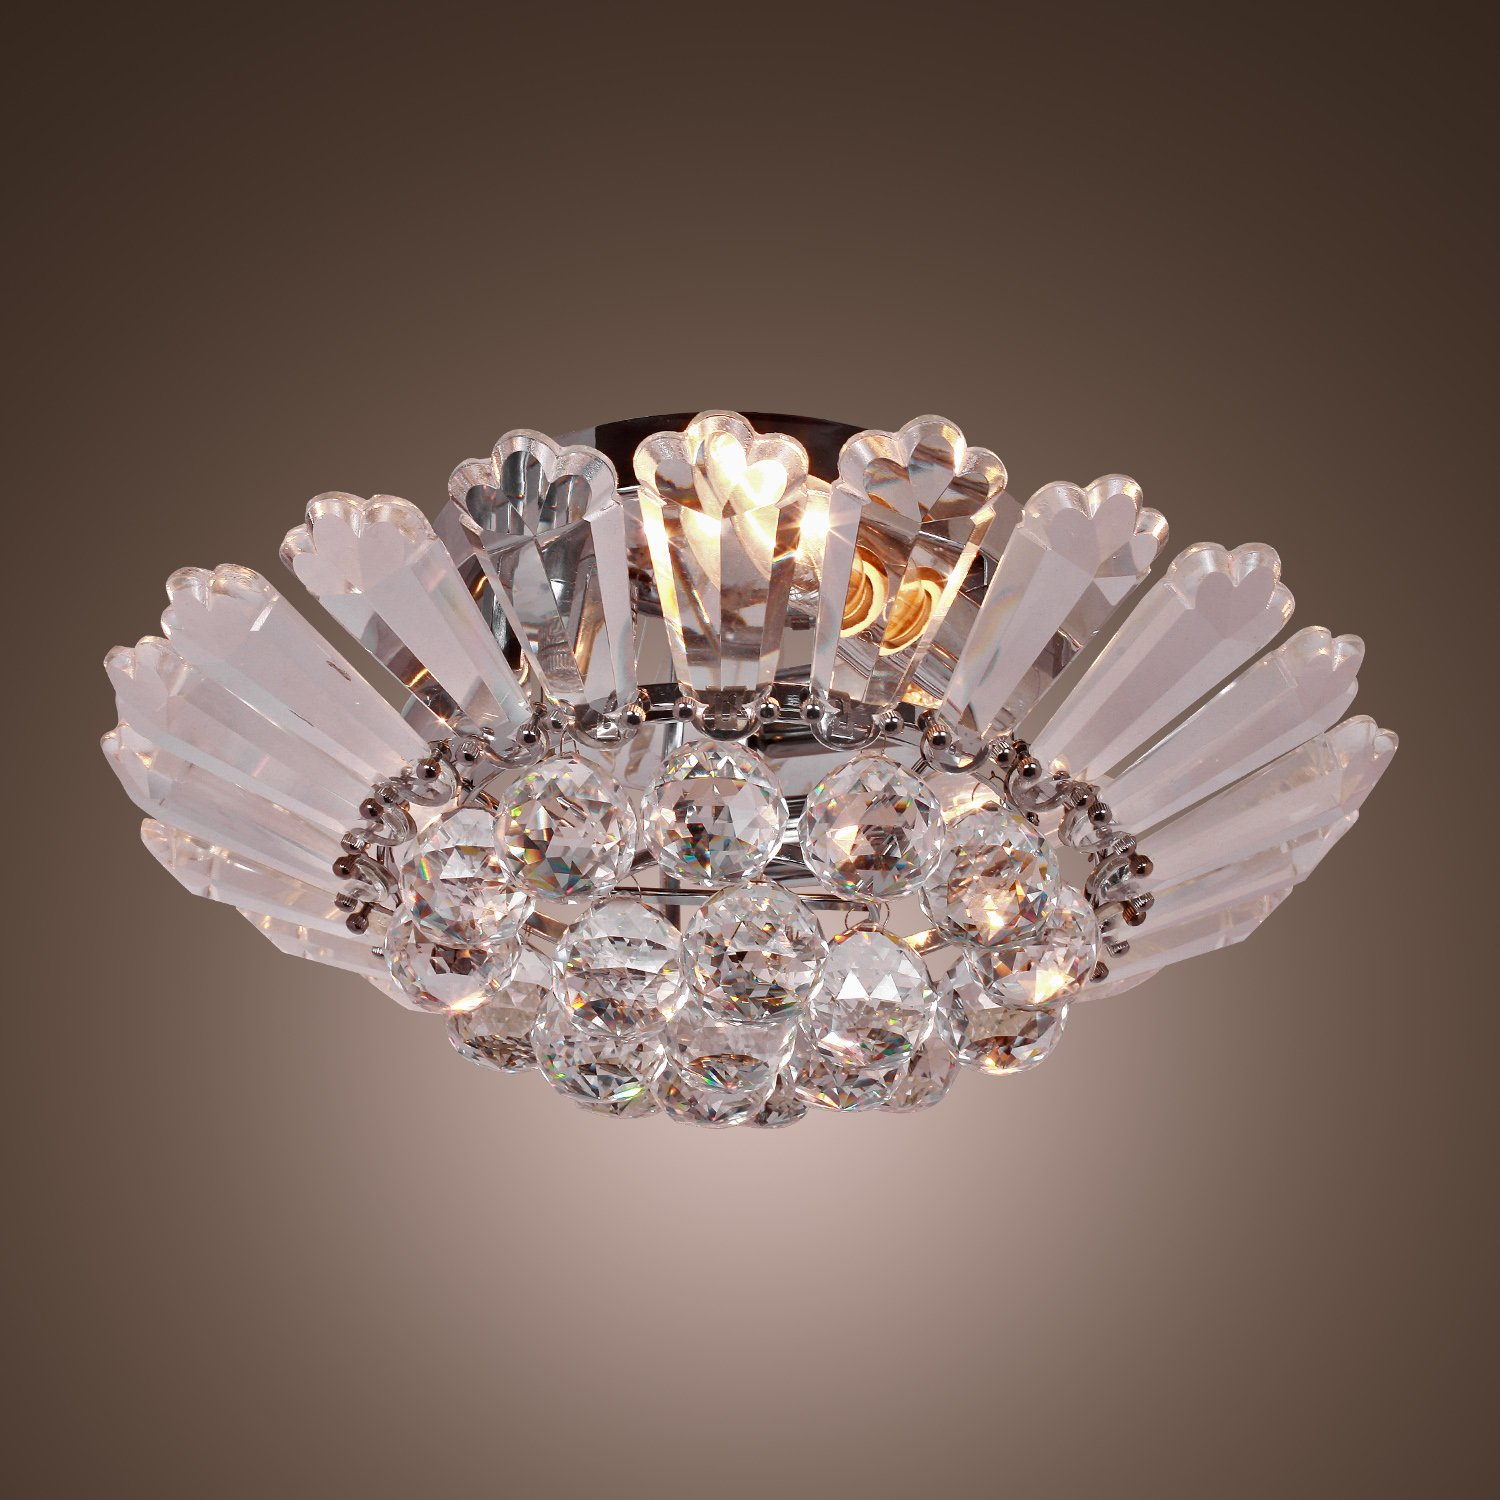 Lightinthebox modern semi flush mount in crystal feature home lightinthebox modern semi flush mount in crystal feature home ceiling light fixture chandeliers lighting for dining room bedroom living room close to arubaitofo Choice Image